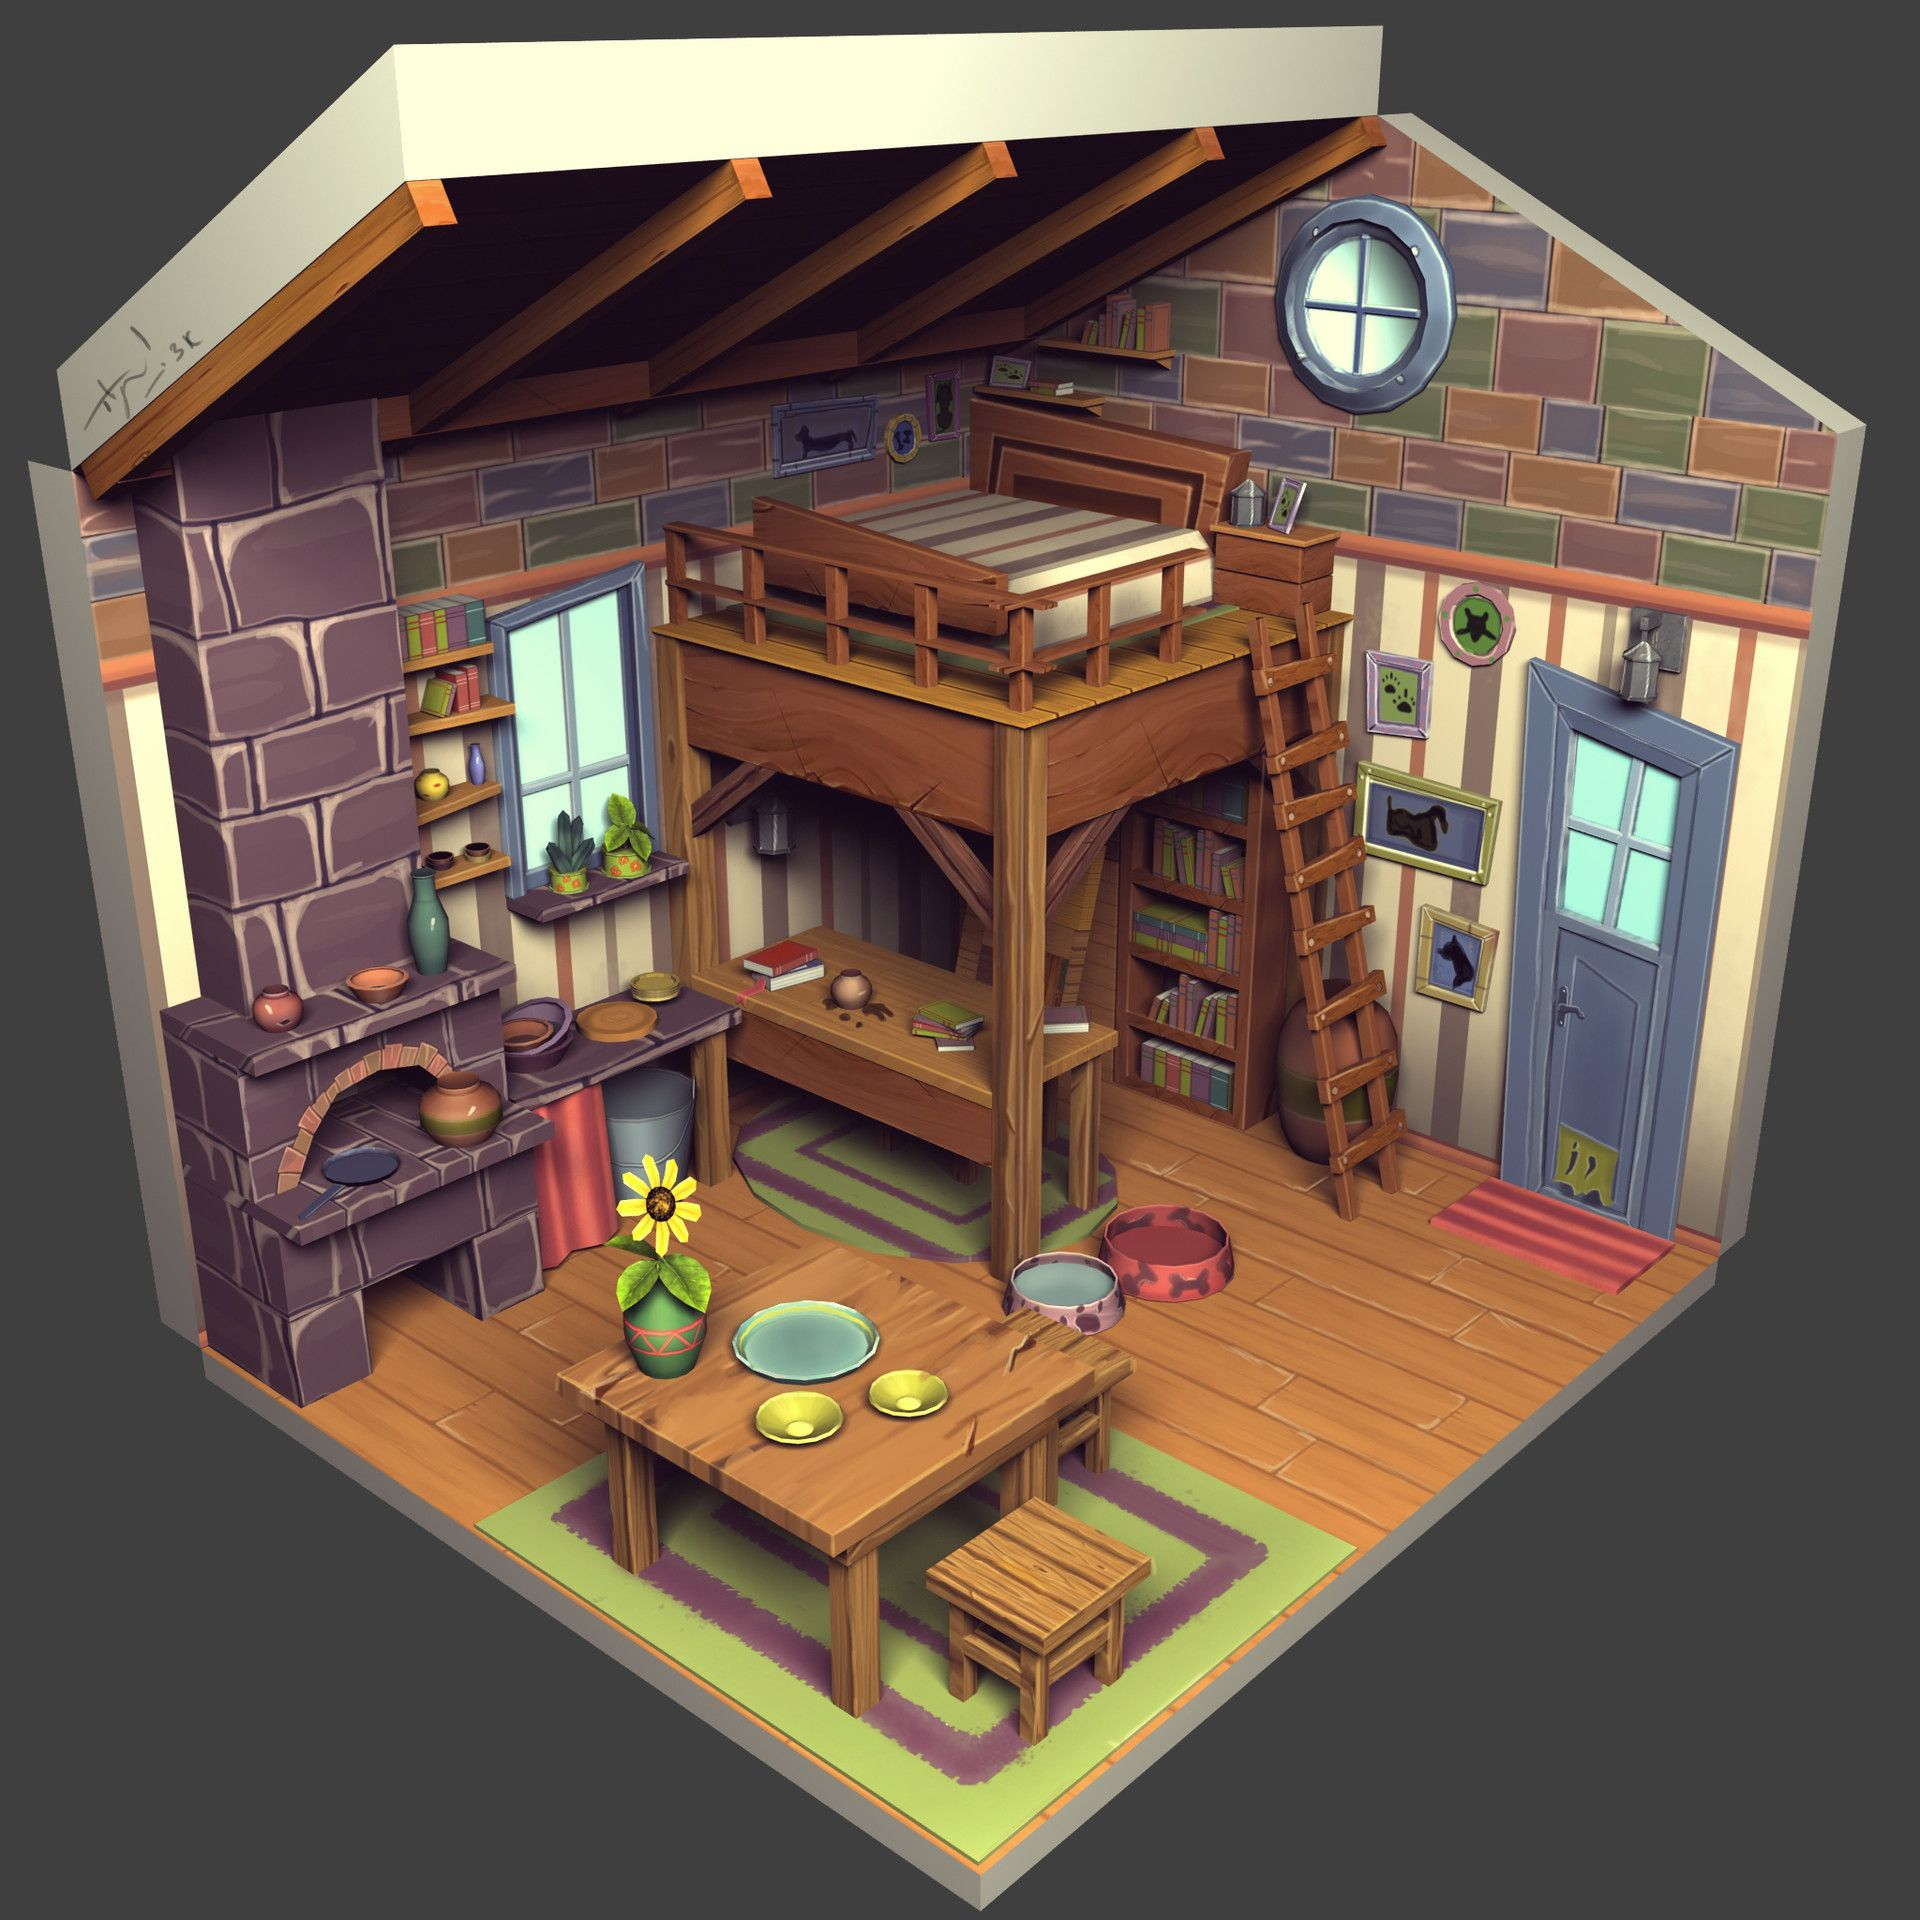 Virtual 3d Home Design Game: Pin By Game Art Resource On Environments: Dioramas, Cross